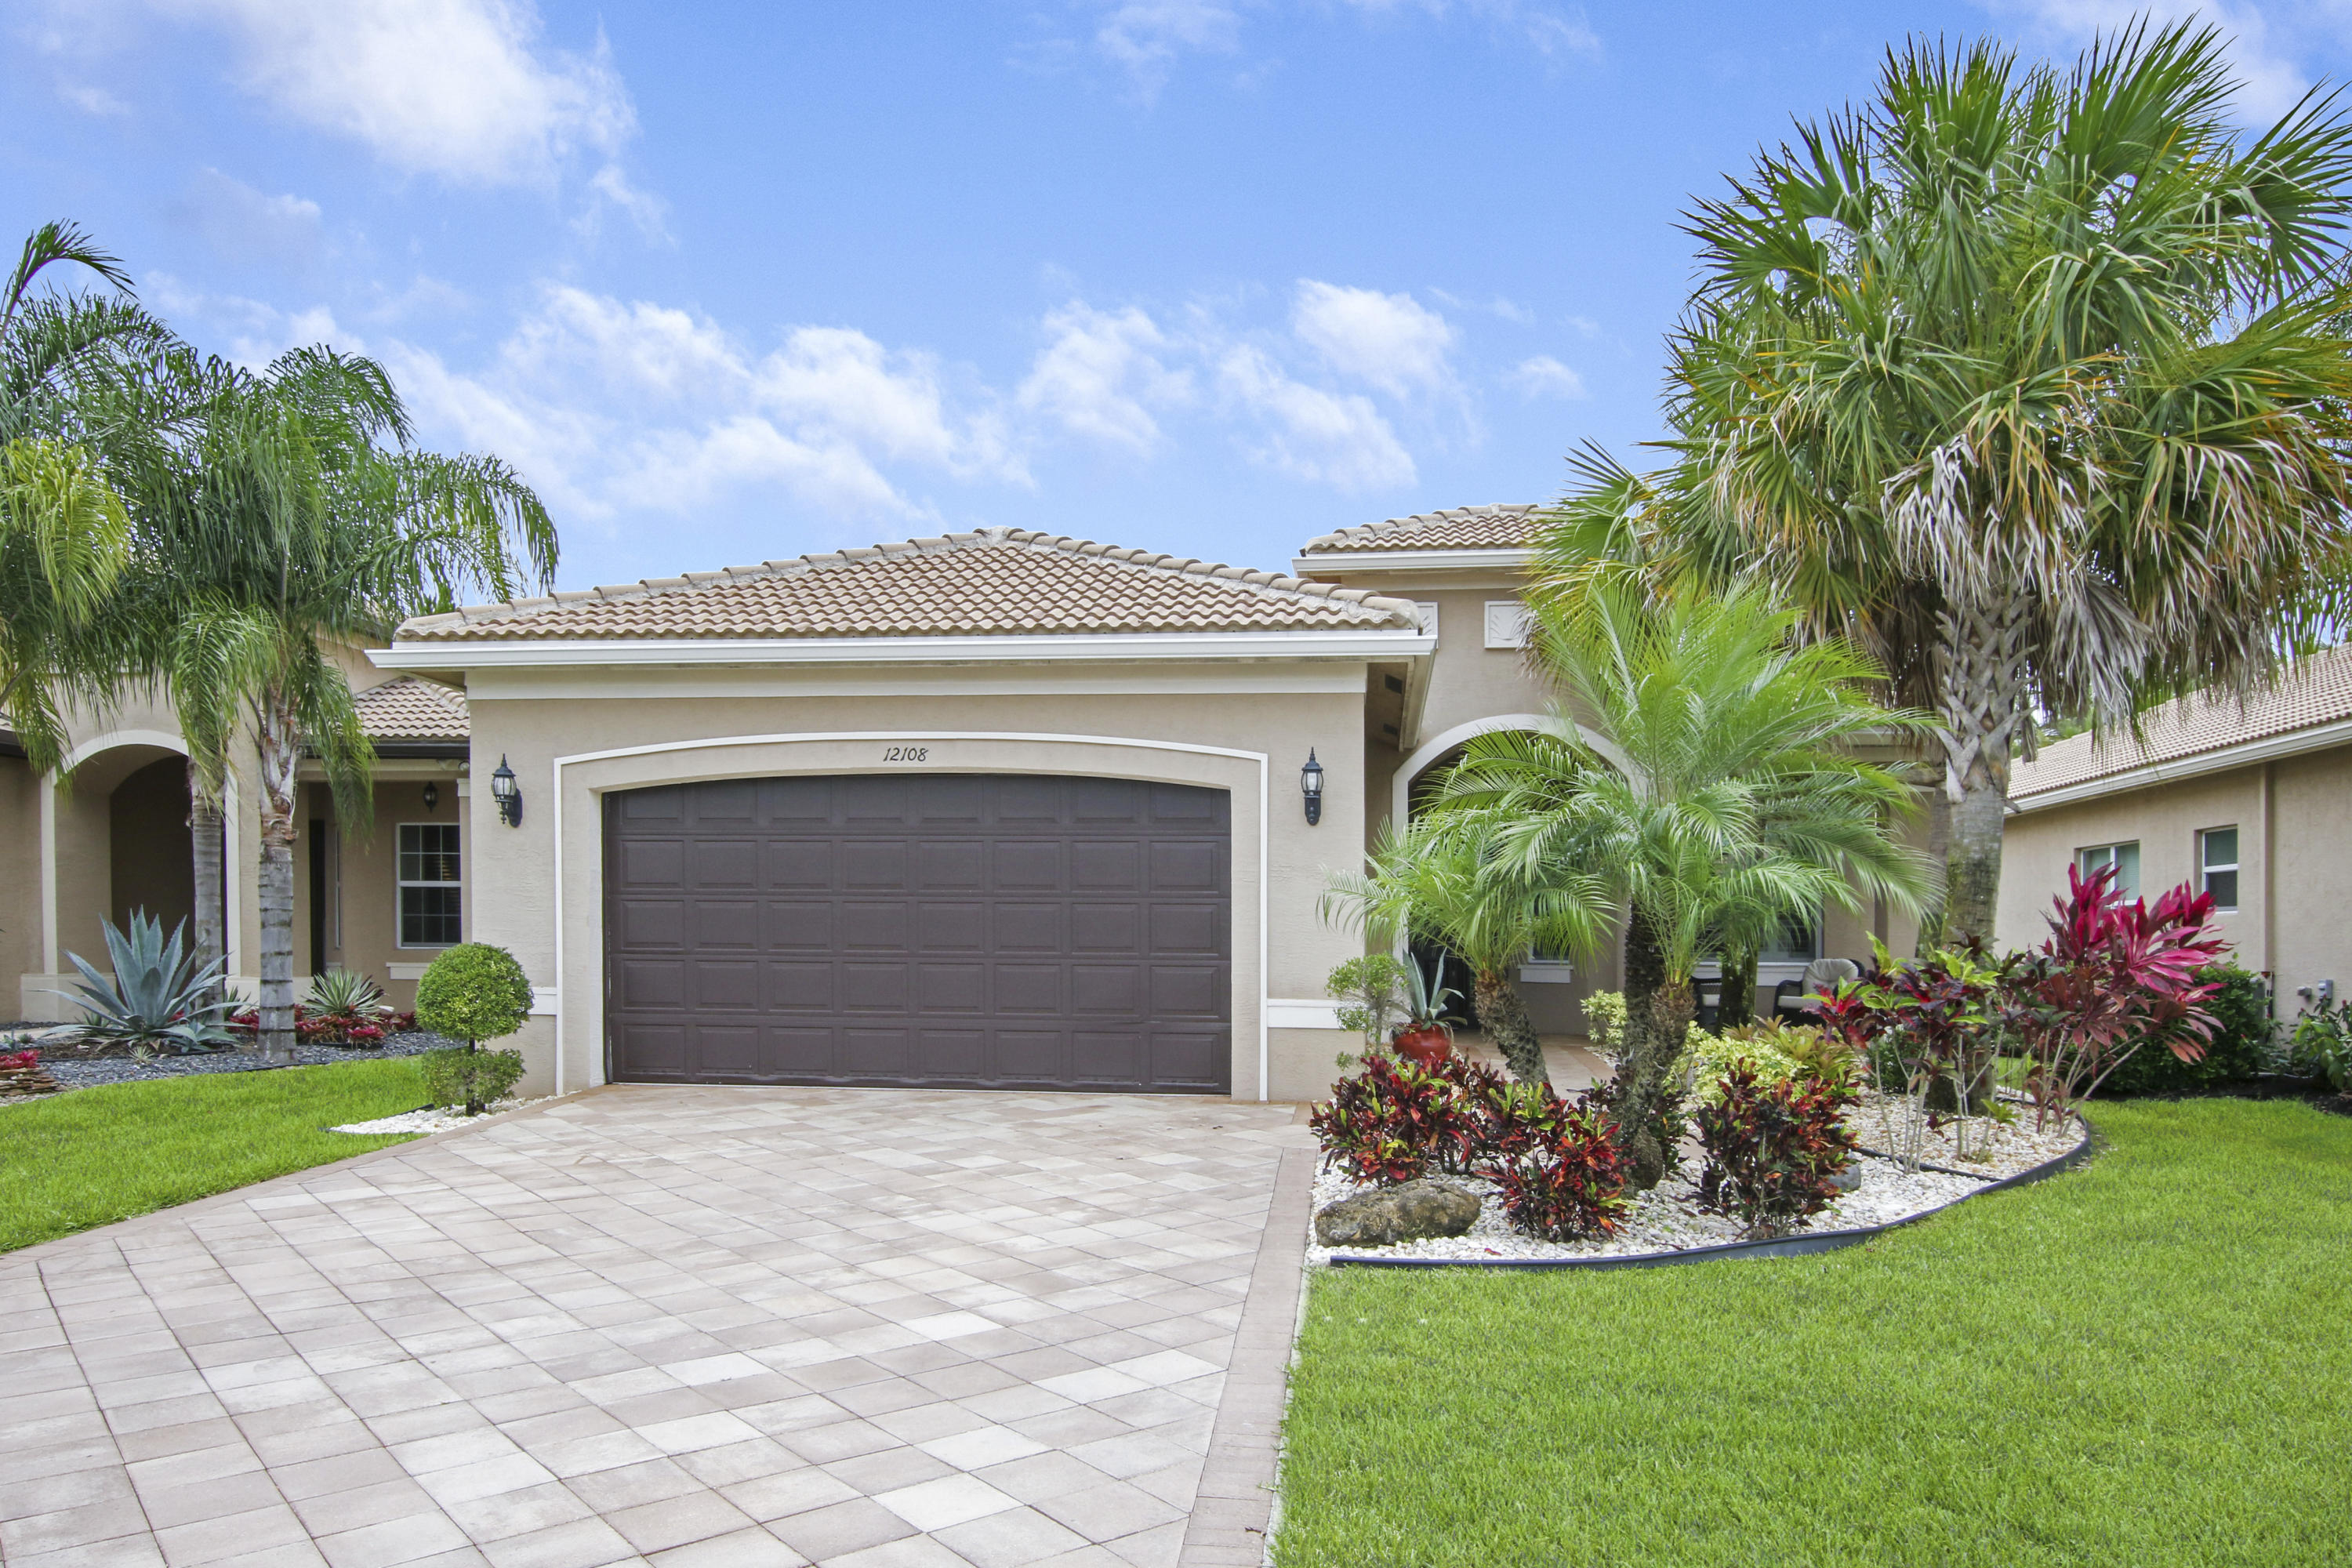 Home for sale in Valencia Cove Boynton Beach Florida